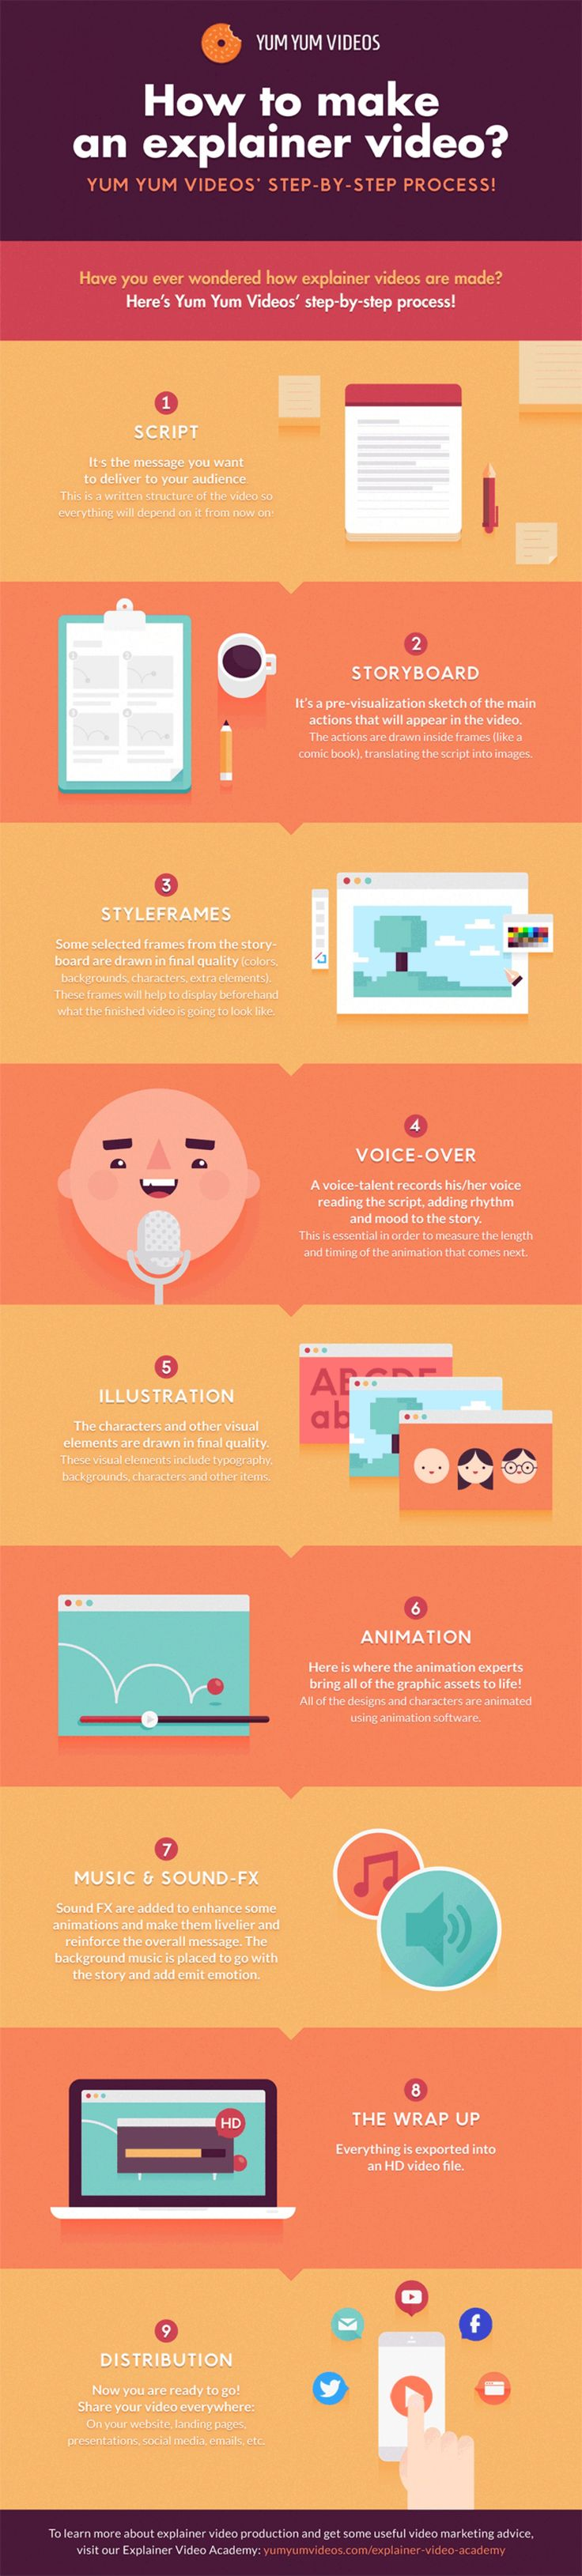 How to Make an Explainer Video Step-by-Step Infographic